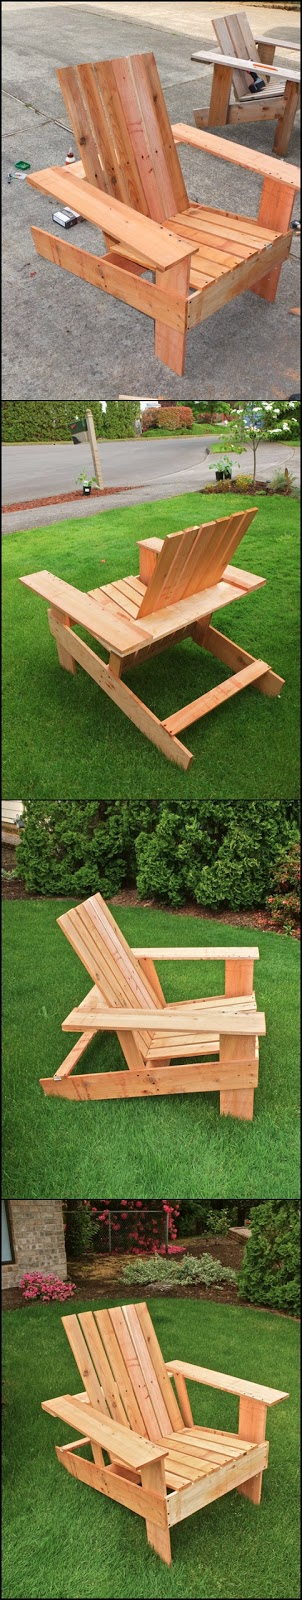 How to Build Your Own Adirondack chairs